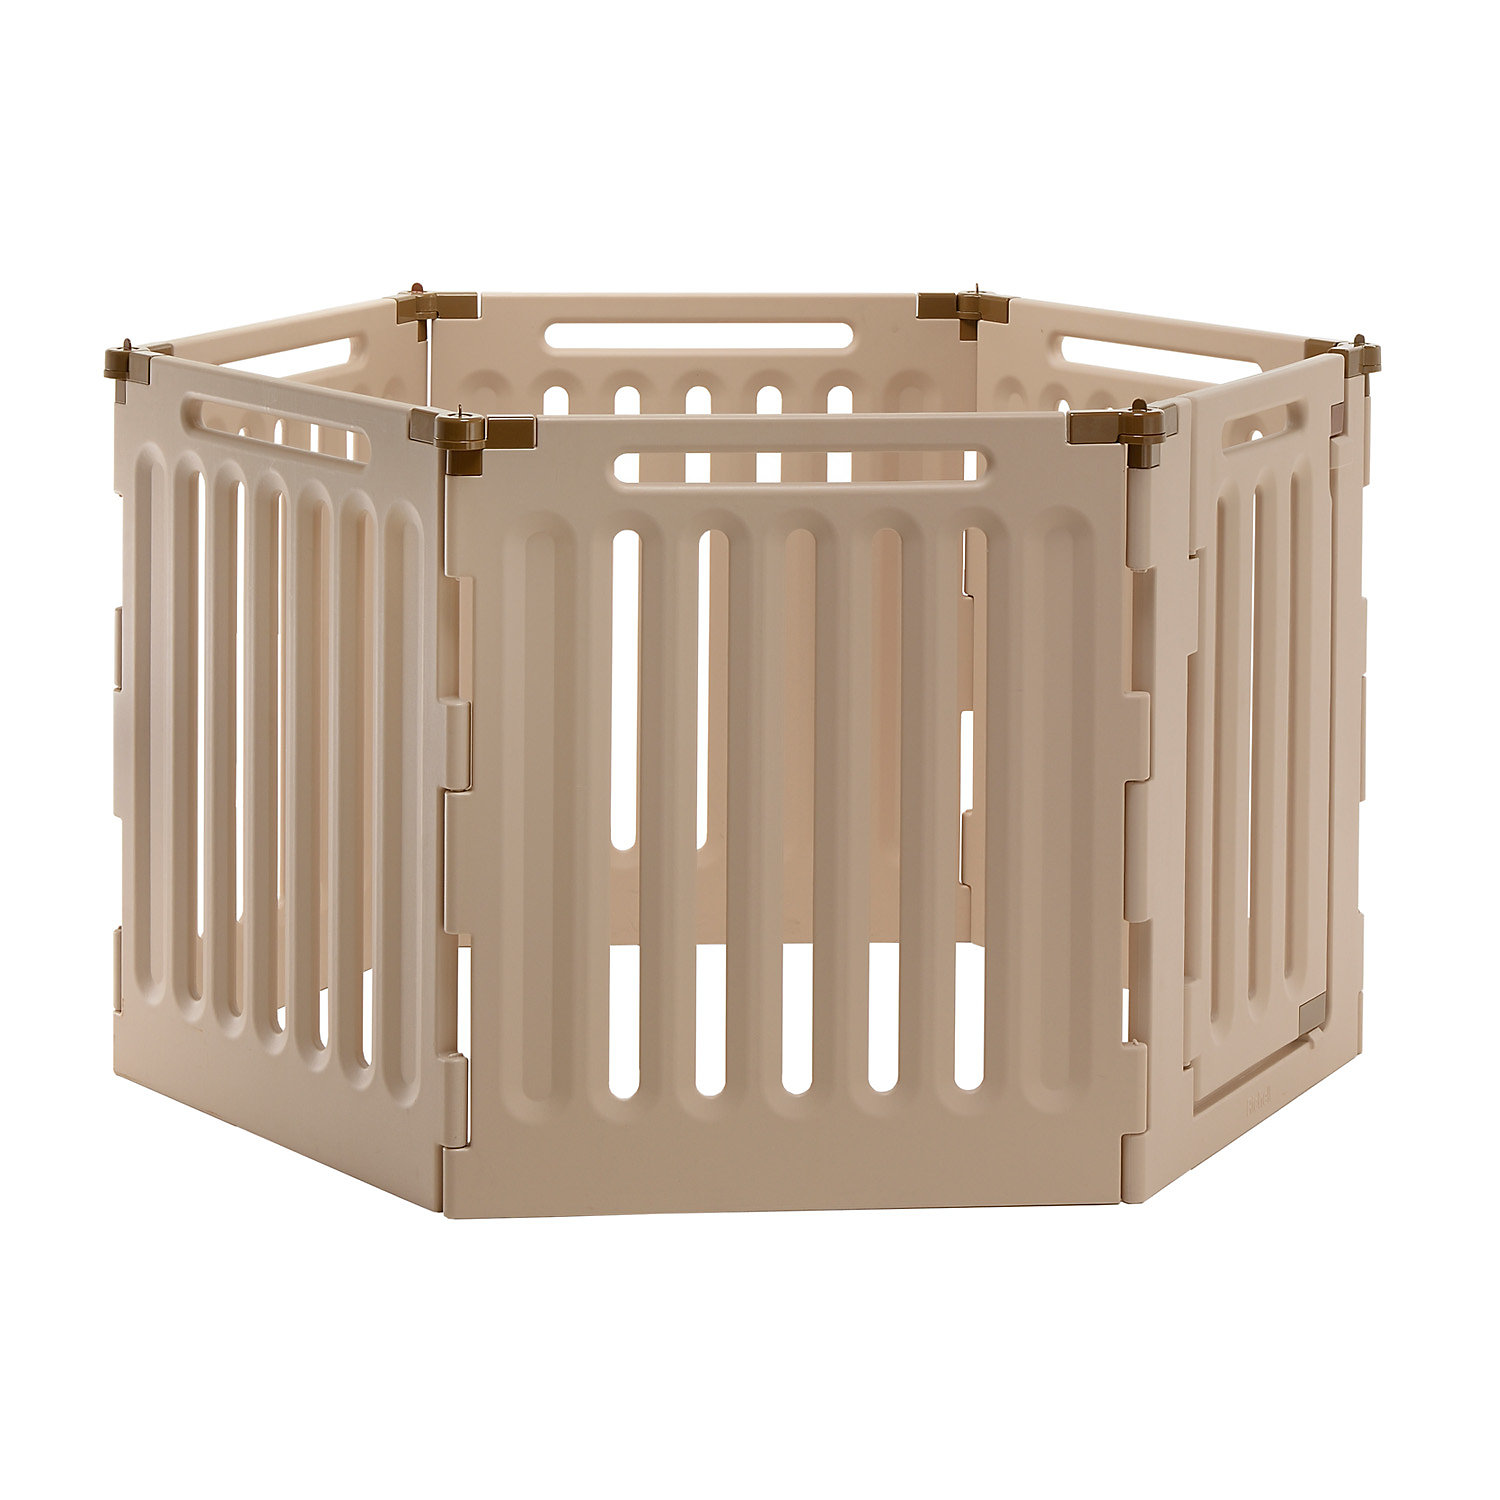 Richell Convertible Indoor Outdoor Play Pen Six Panel 63.8 IN Tan